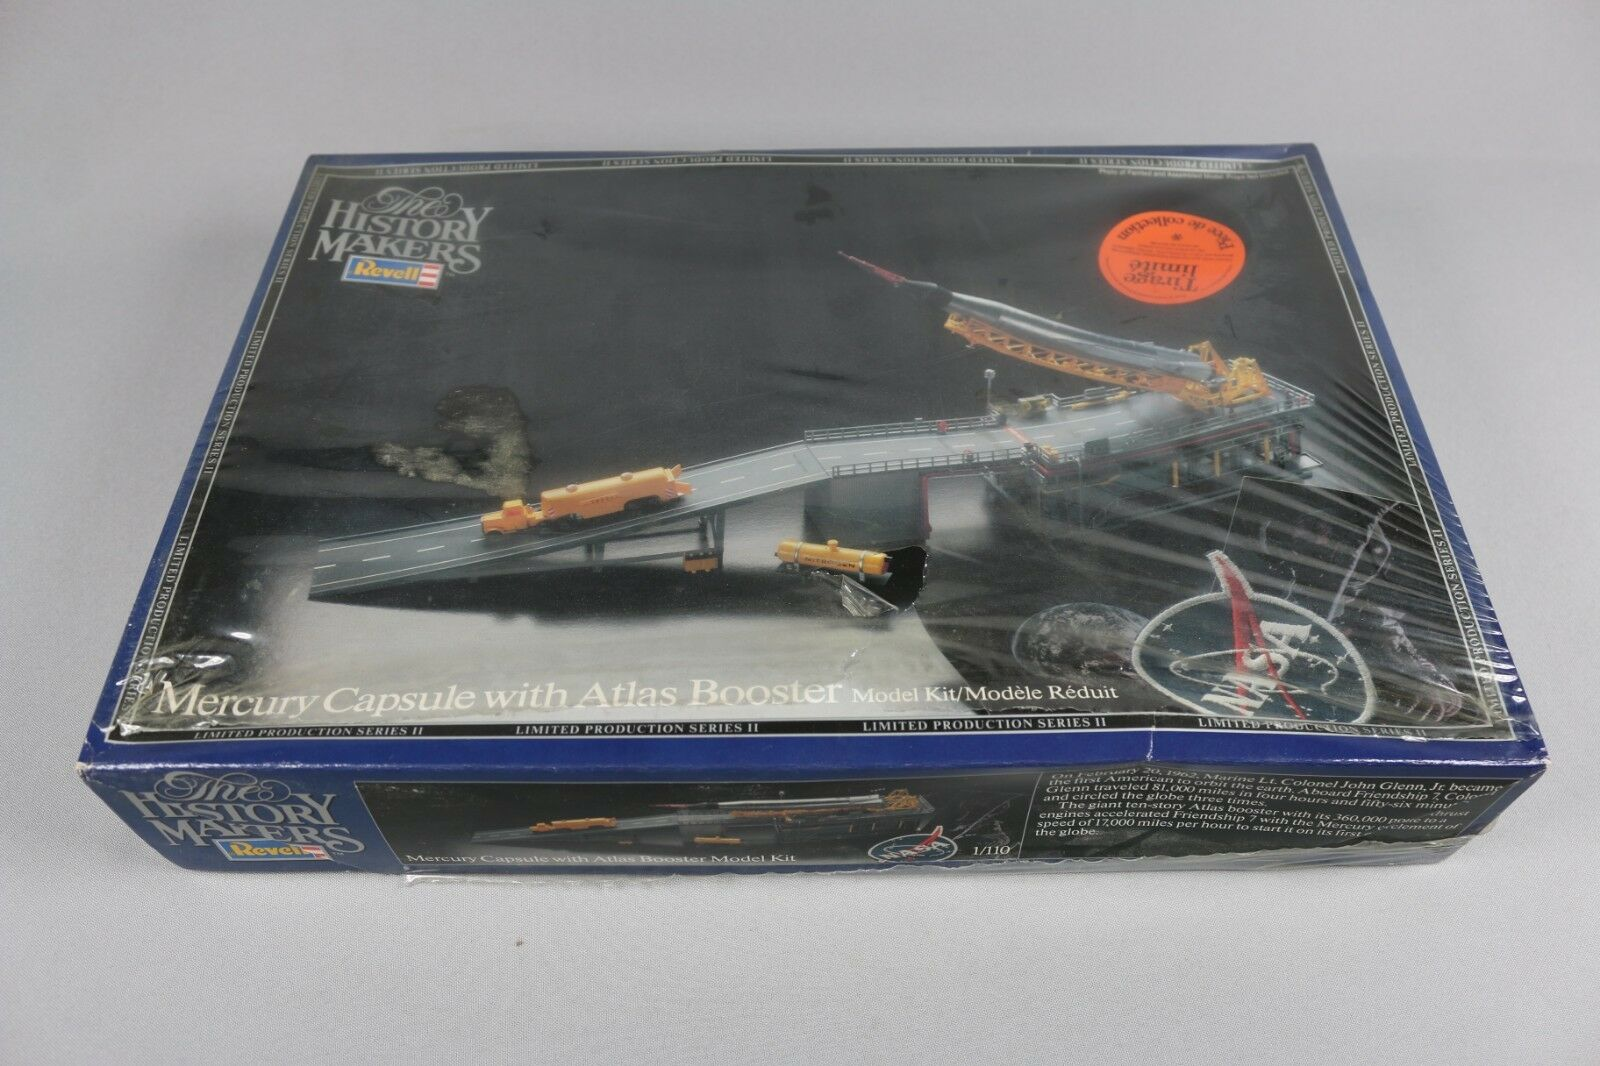 Zf1238 revell 1 110 military model 8647 the history makers mercury capsule